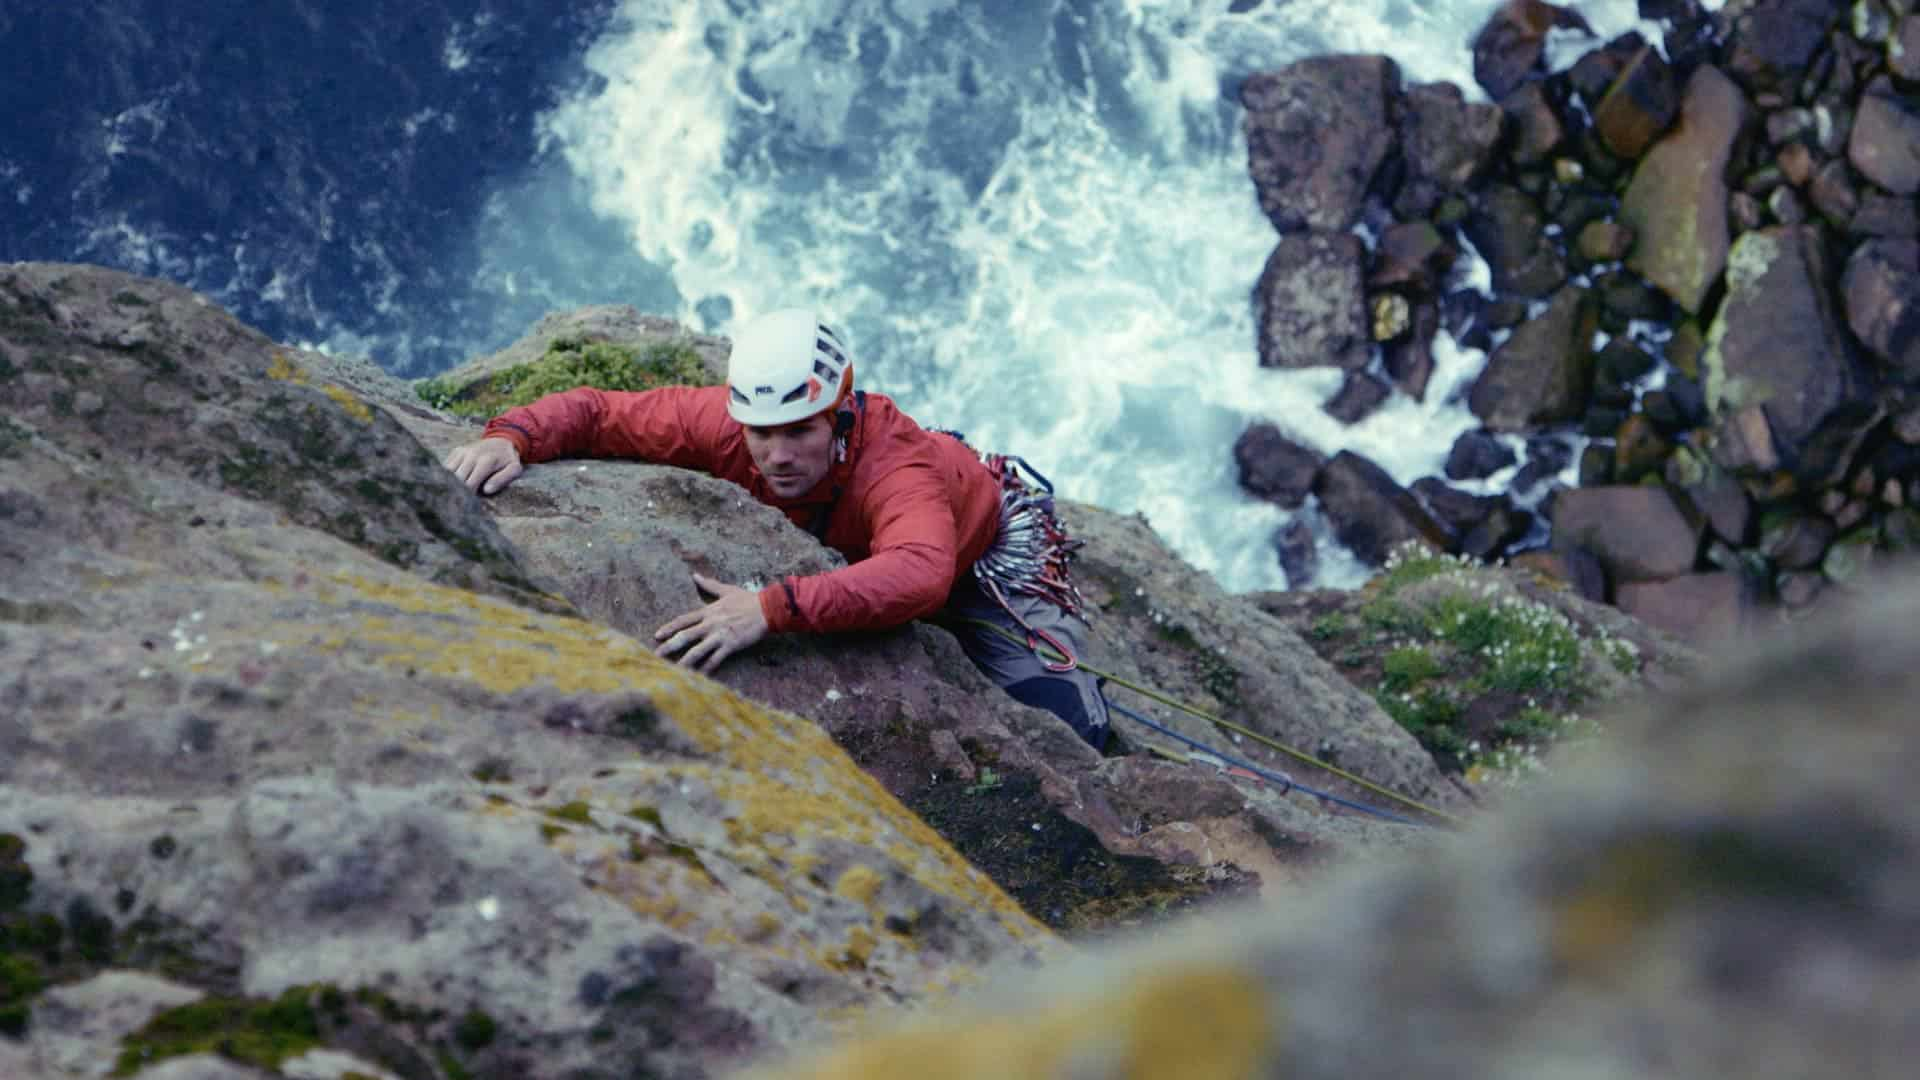 Posing Productions - 2019 - Climbing Blind - Old Man of Hoy - Jesse Dufton